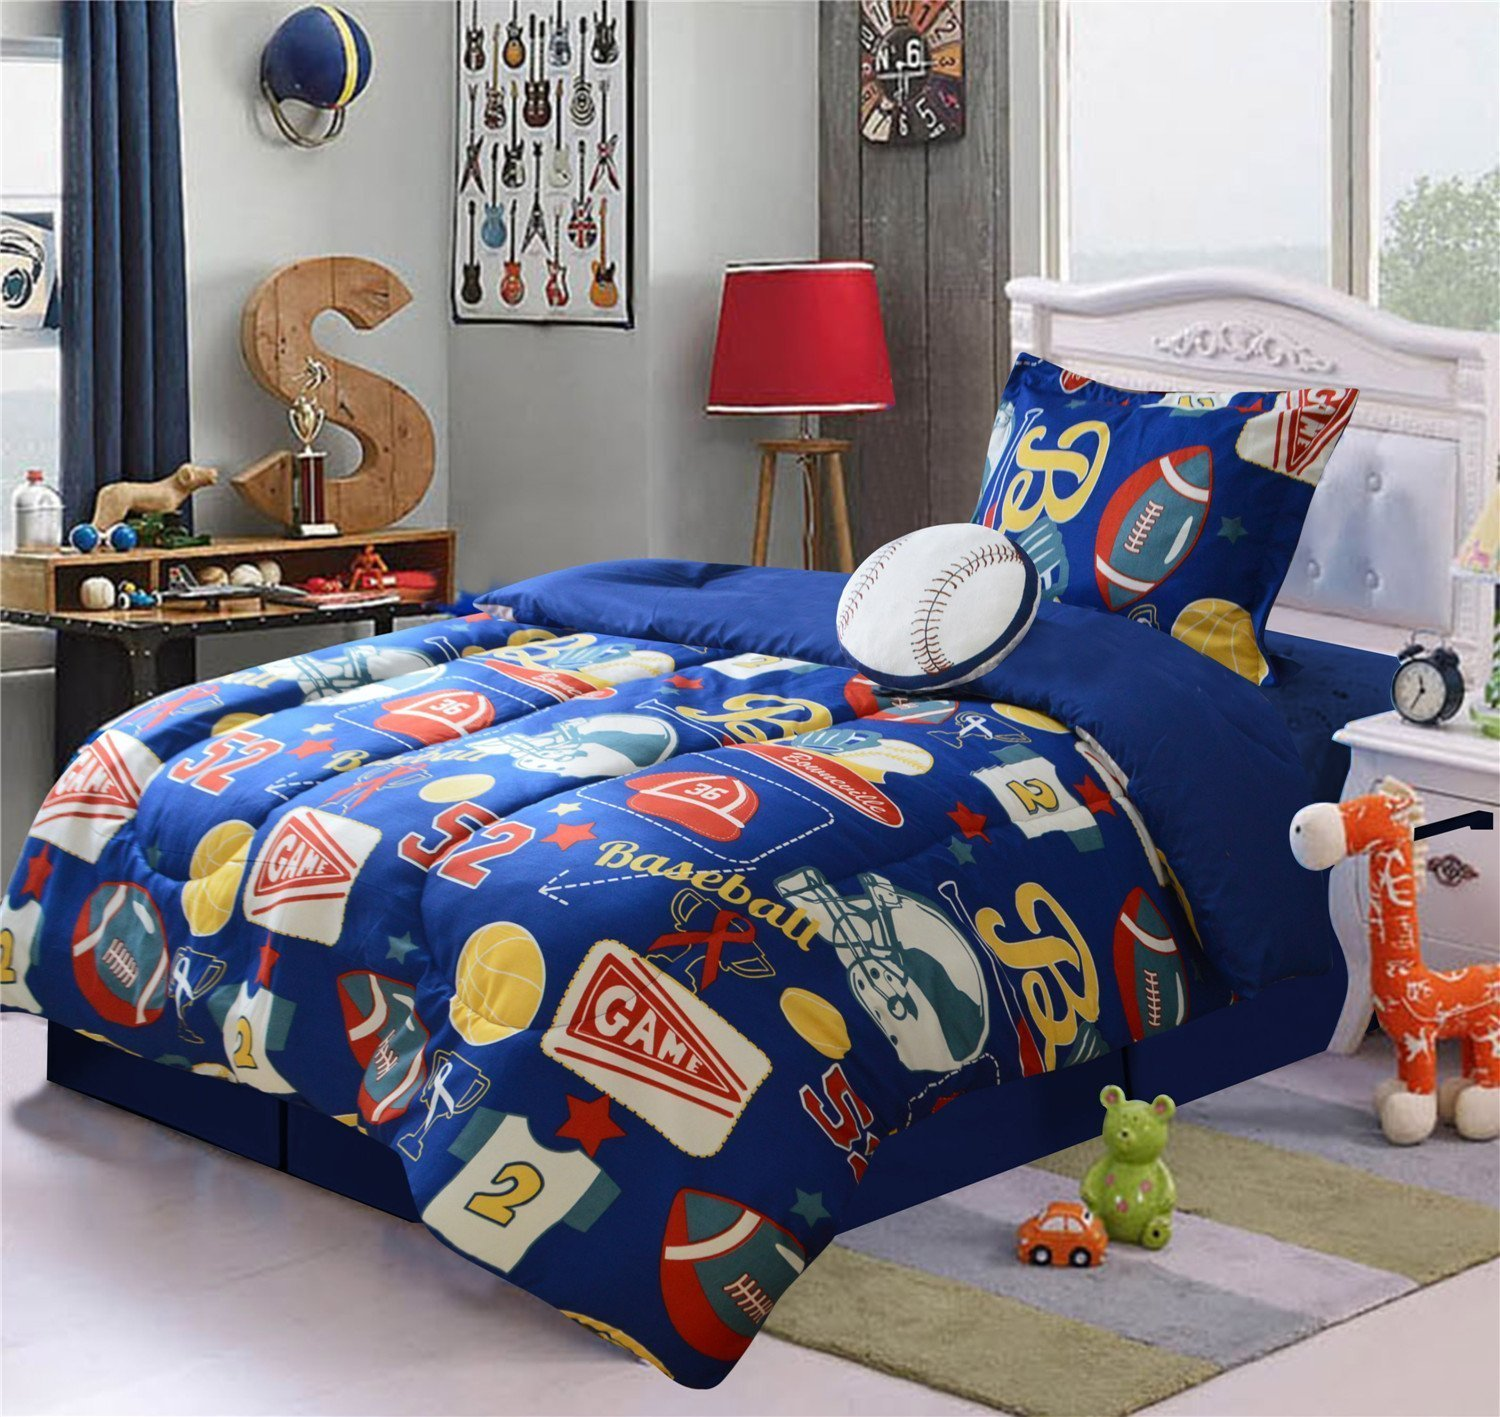 WPM 4 Piece Kids Twin Size Comforter Set Sports football baseball navy blue bedding for kids bed room sheets pillow sham with Plush Toy-JD6651…